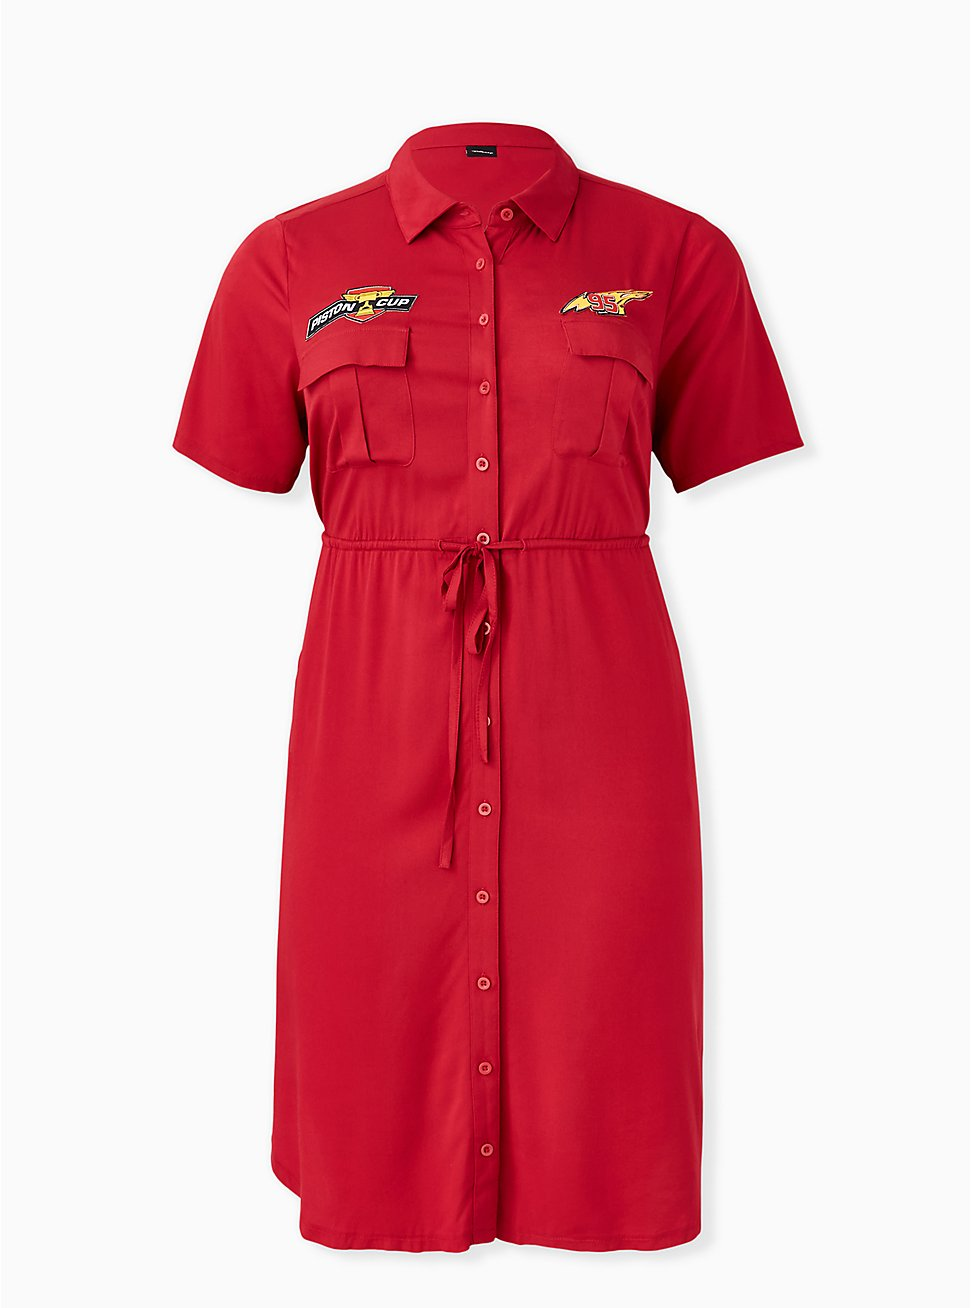 Disney Pixar Cars Lightning McQueen Drawstring Shirt Dress , JESTER RED, hi-res